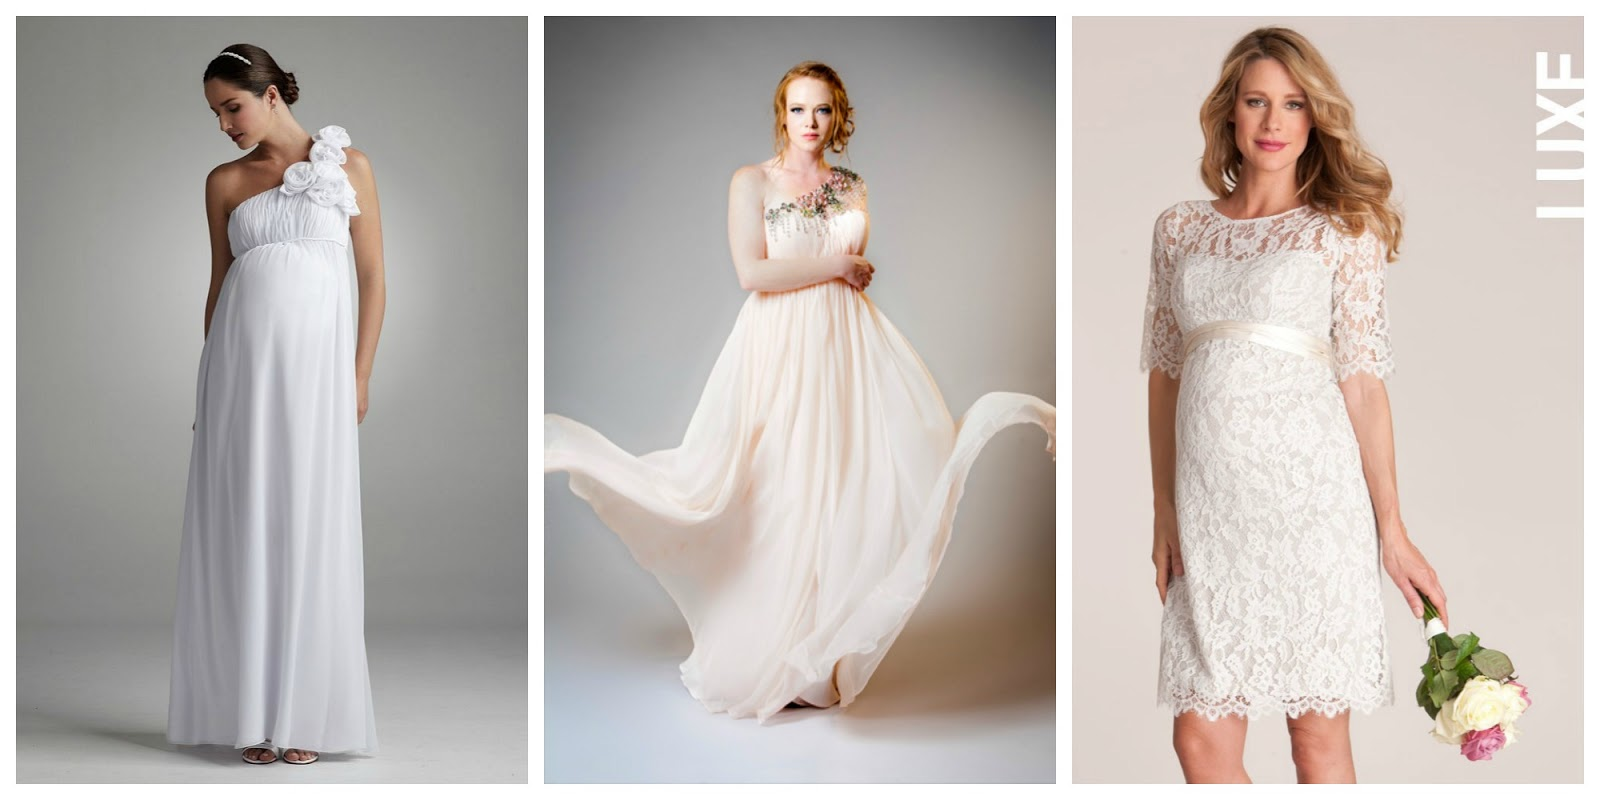 Wedding wednesday maternity wedding fashion guest post for Wedding guest pregnancy dresses